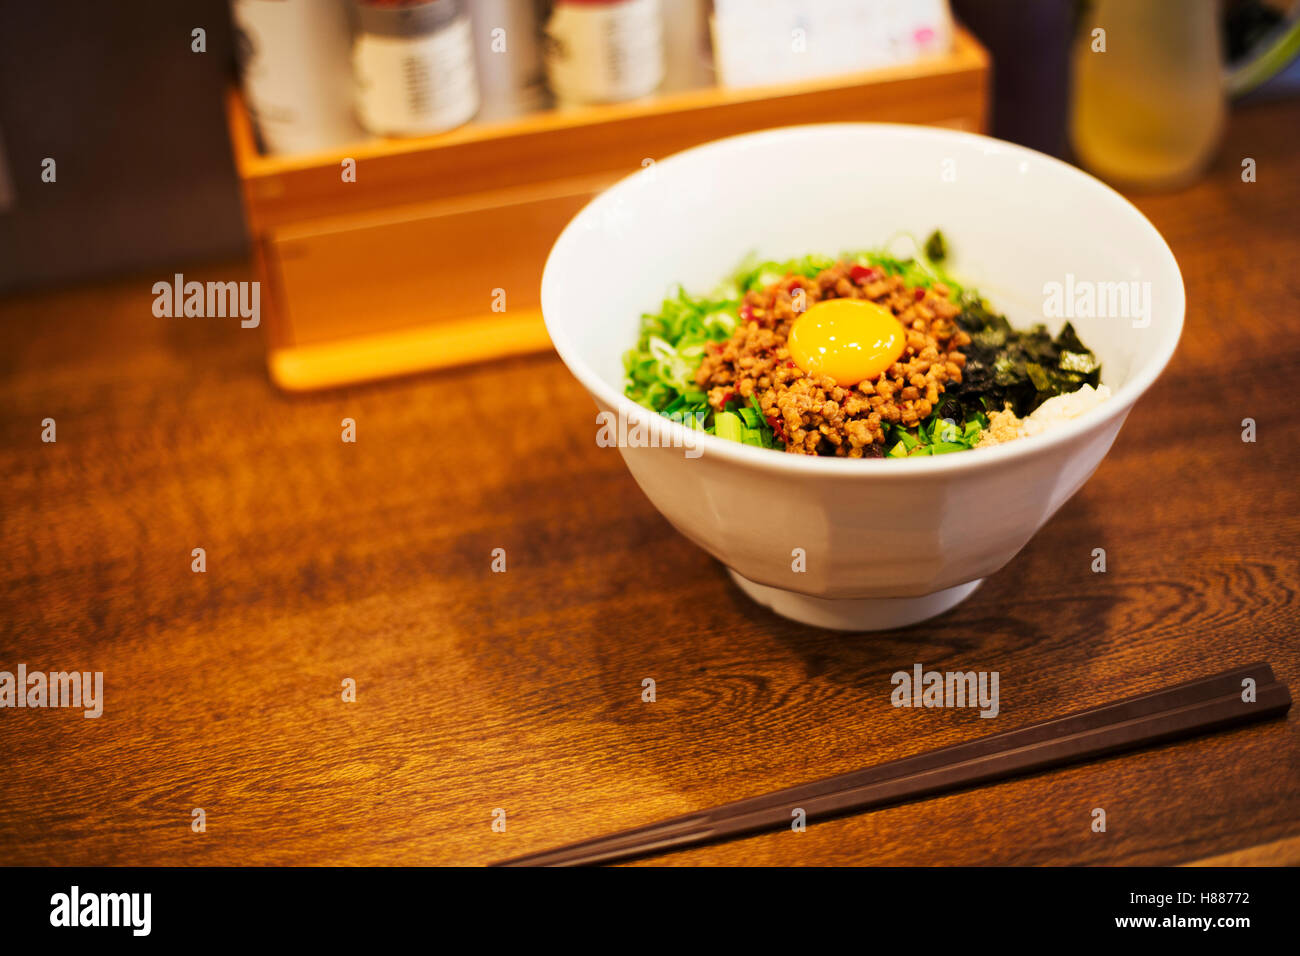 A ramen noodle shop. A white bowl of noodles with vegetables and an egg. Stock Photo